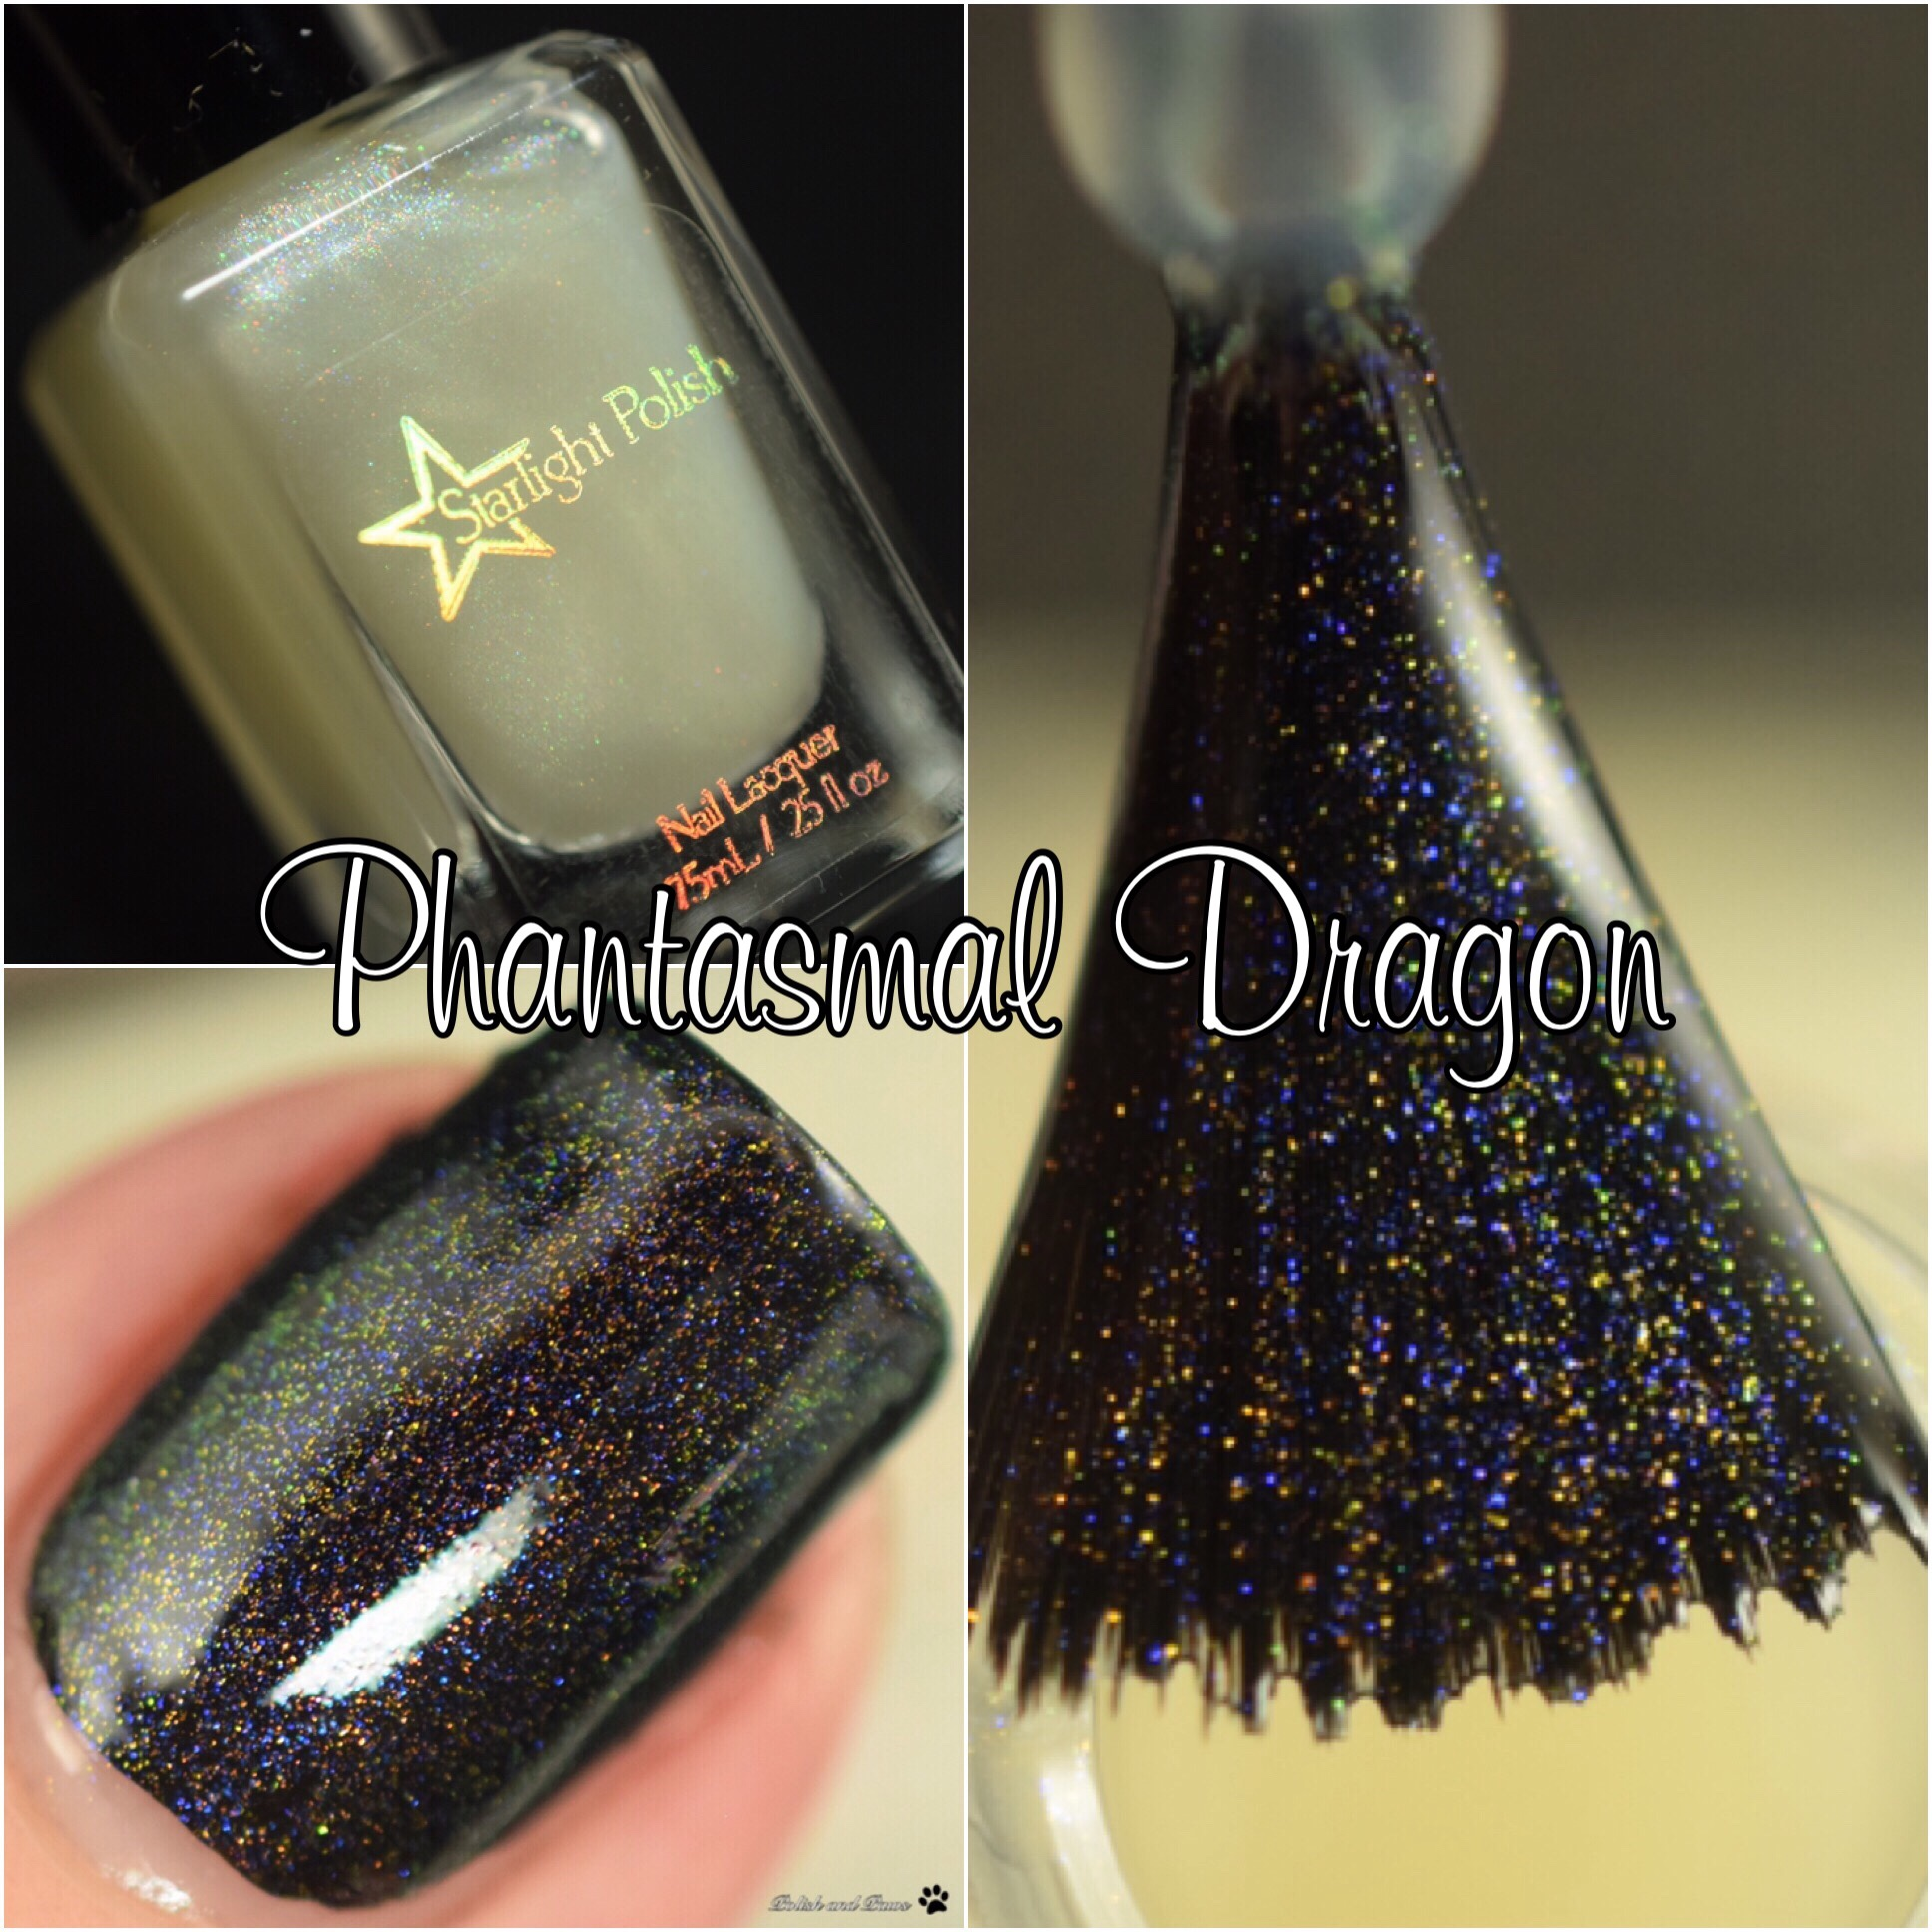 Starlight Polish Phantasmal Dragon